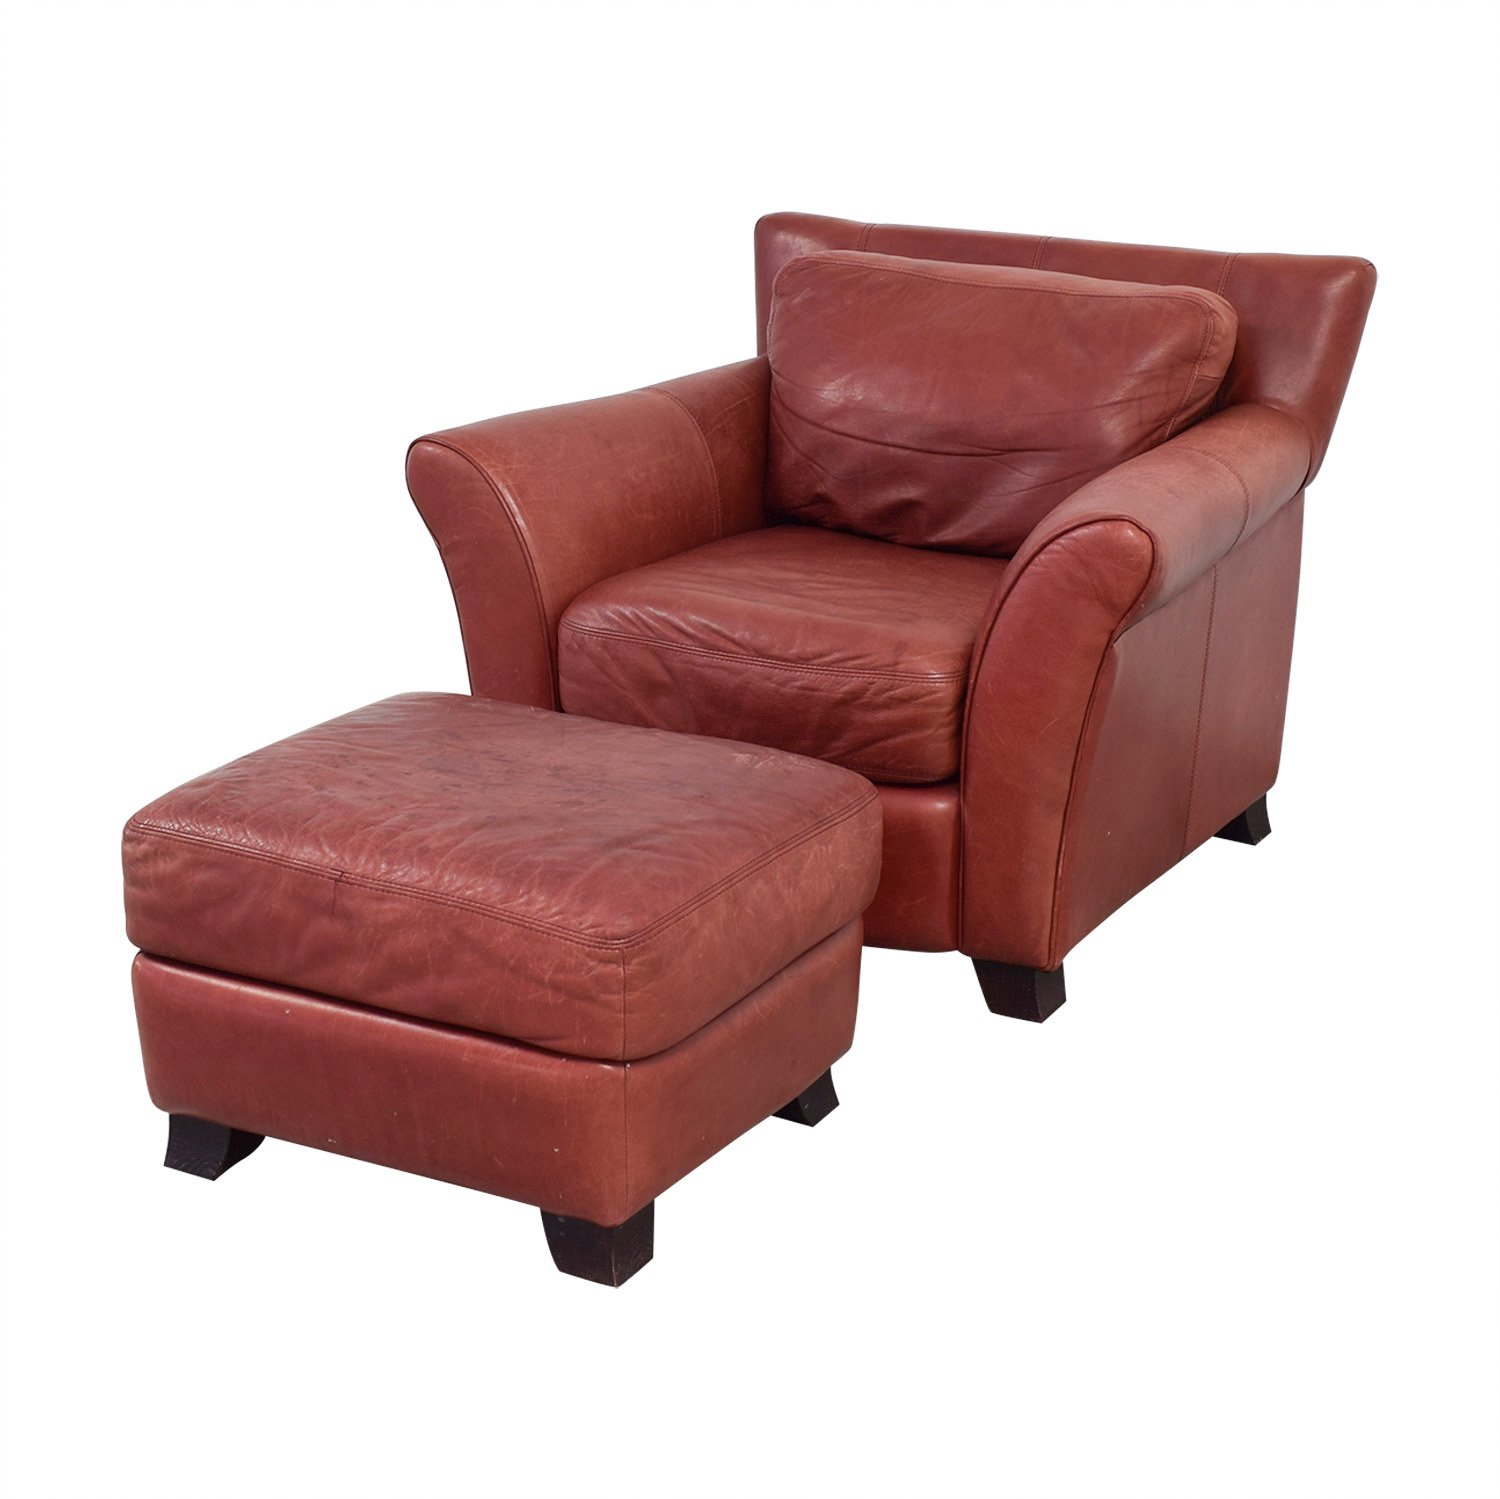 Palliser Red Leather Chair And Ottoman Accent Chairs